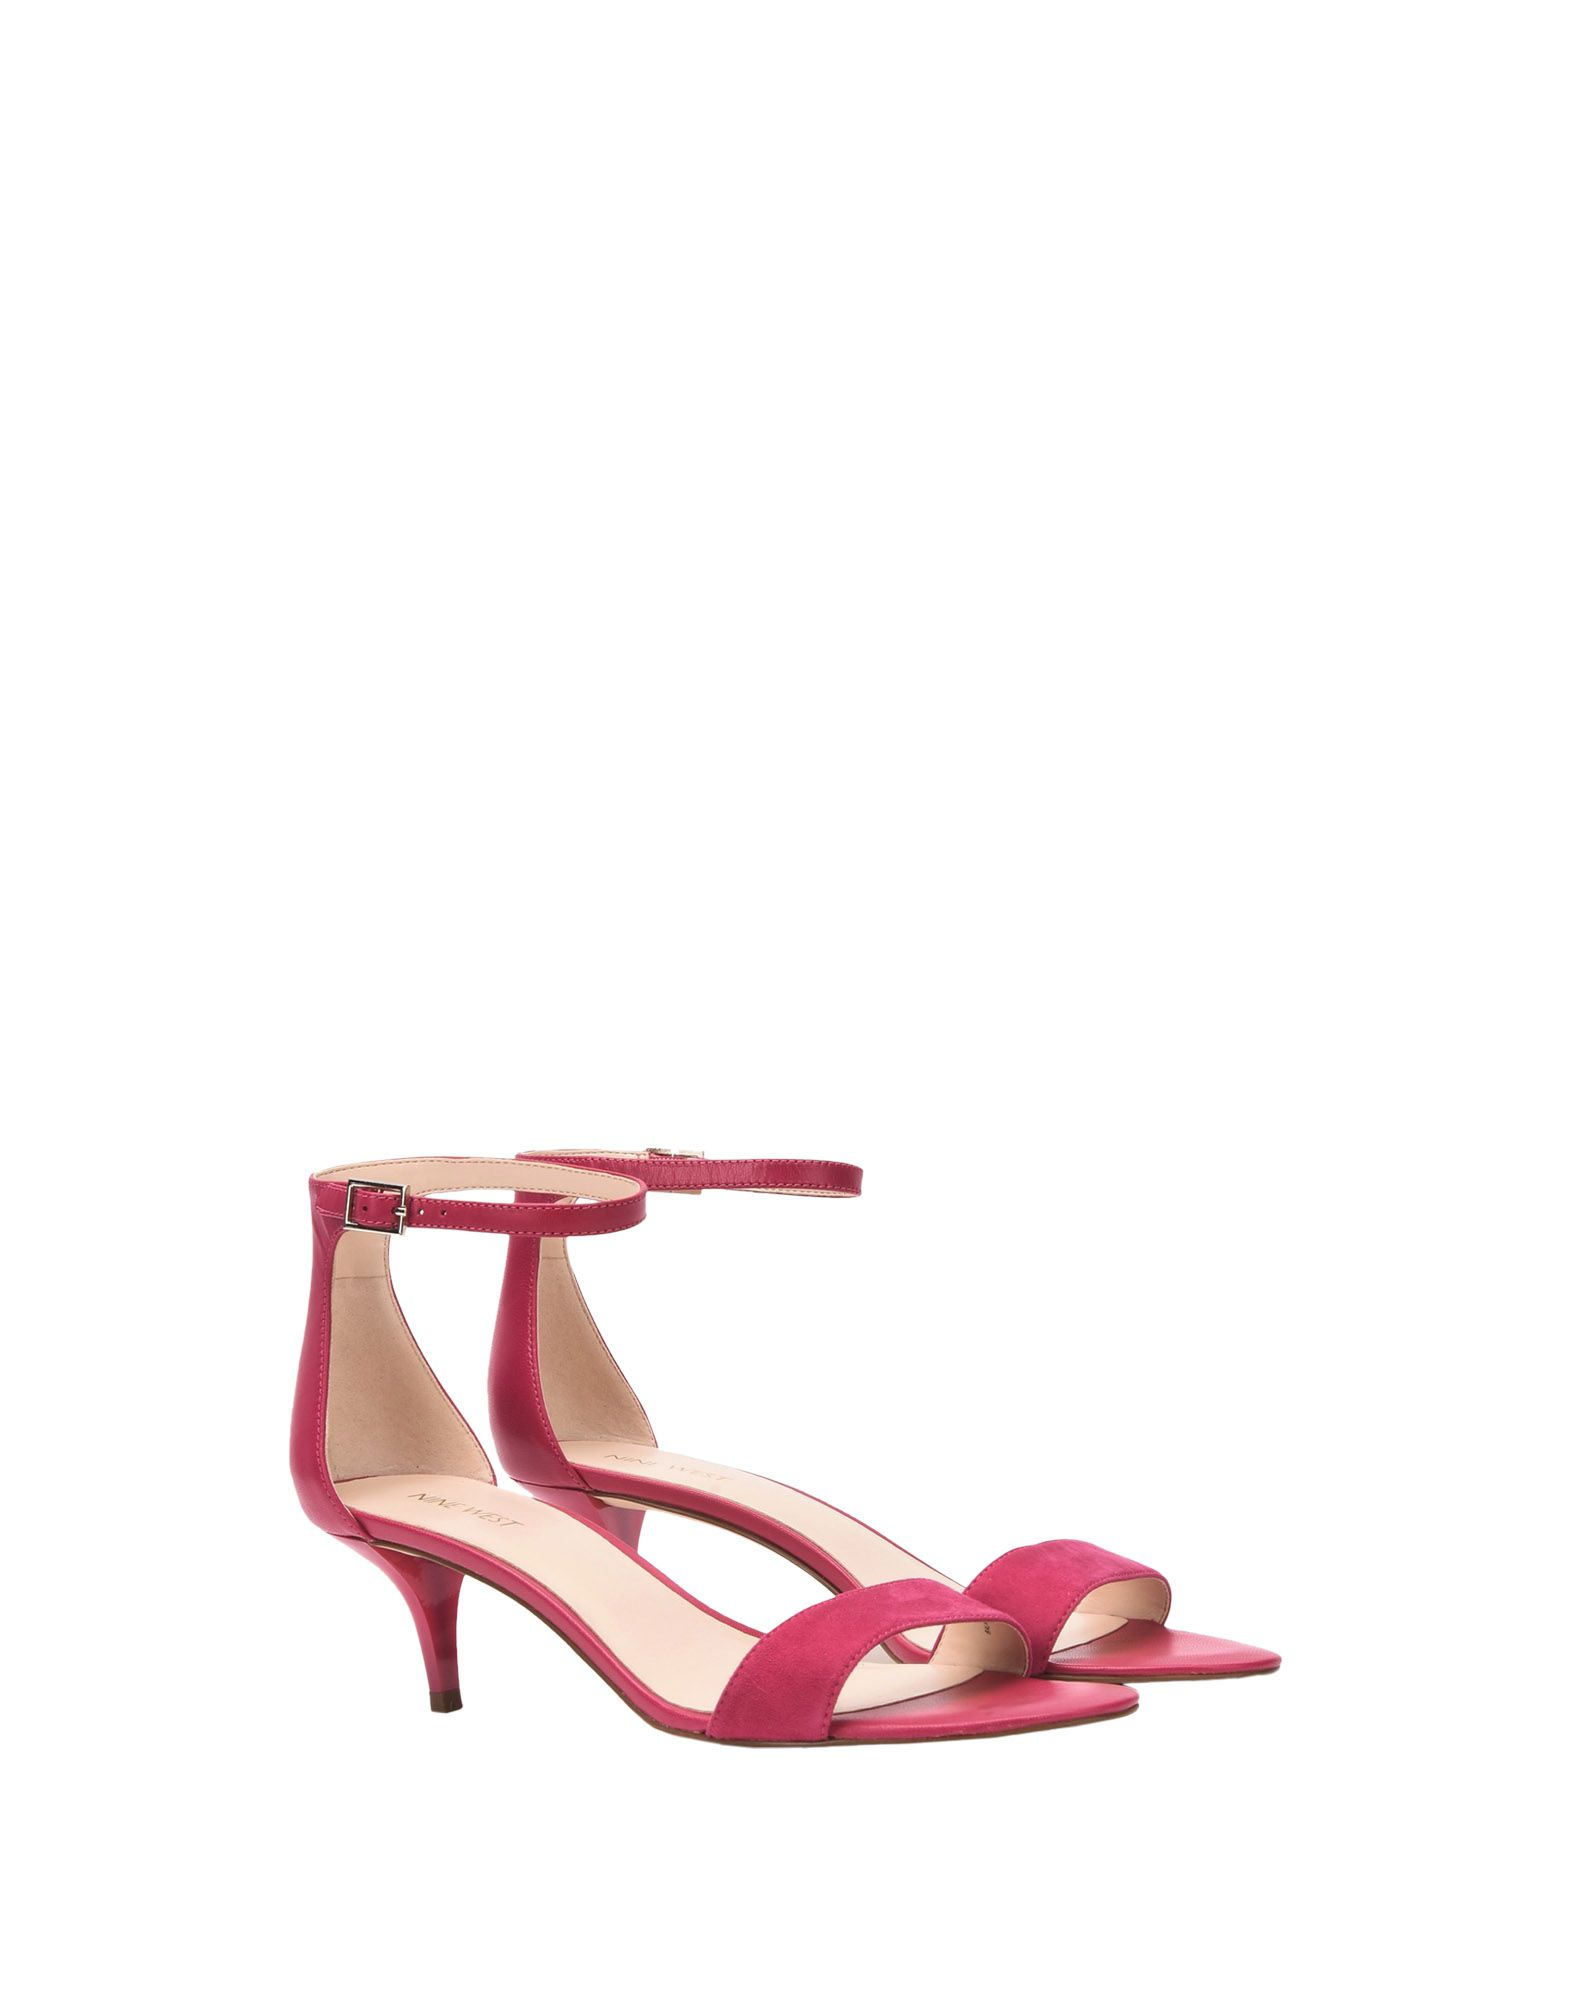 Sandales Nine West Femme - Sandales Nine West sur